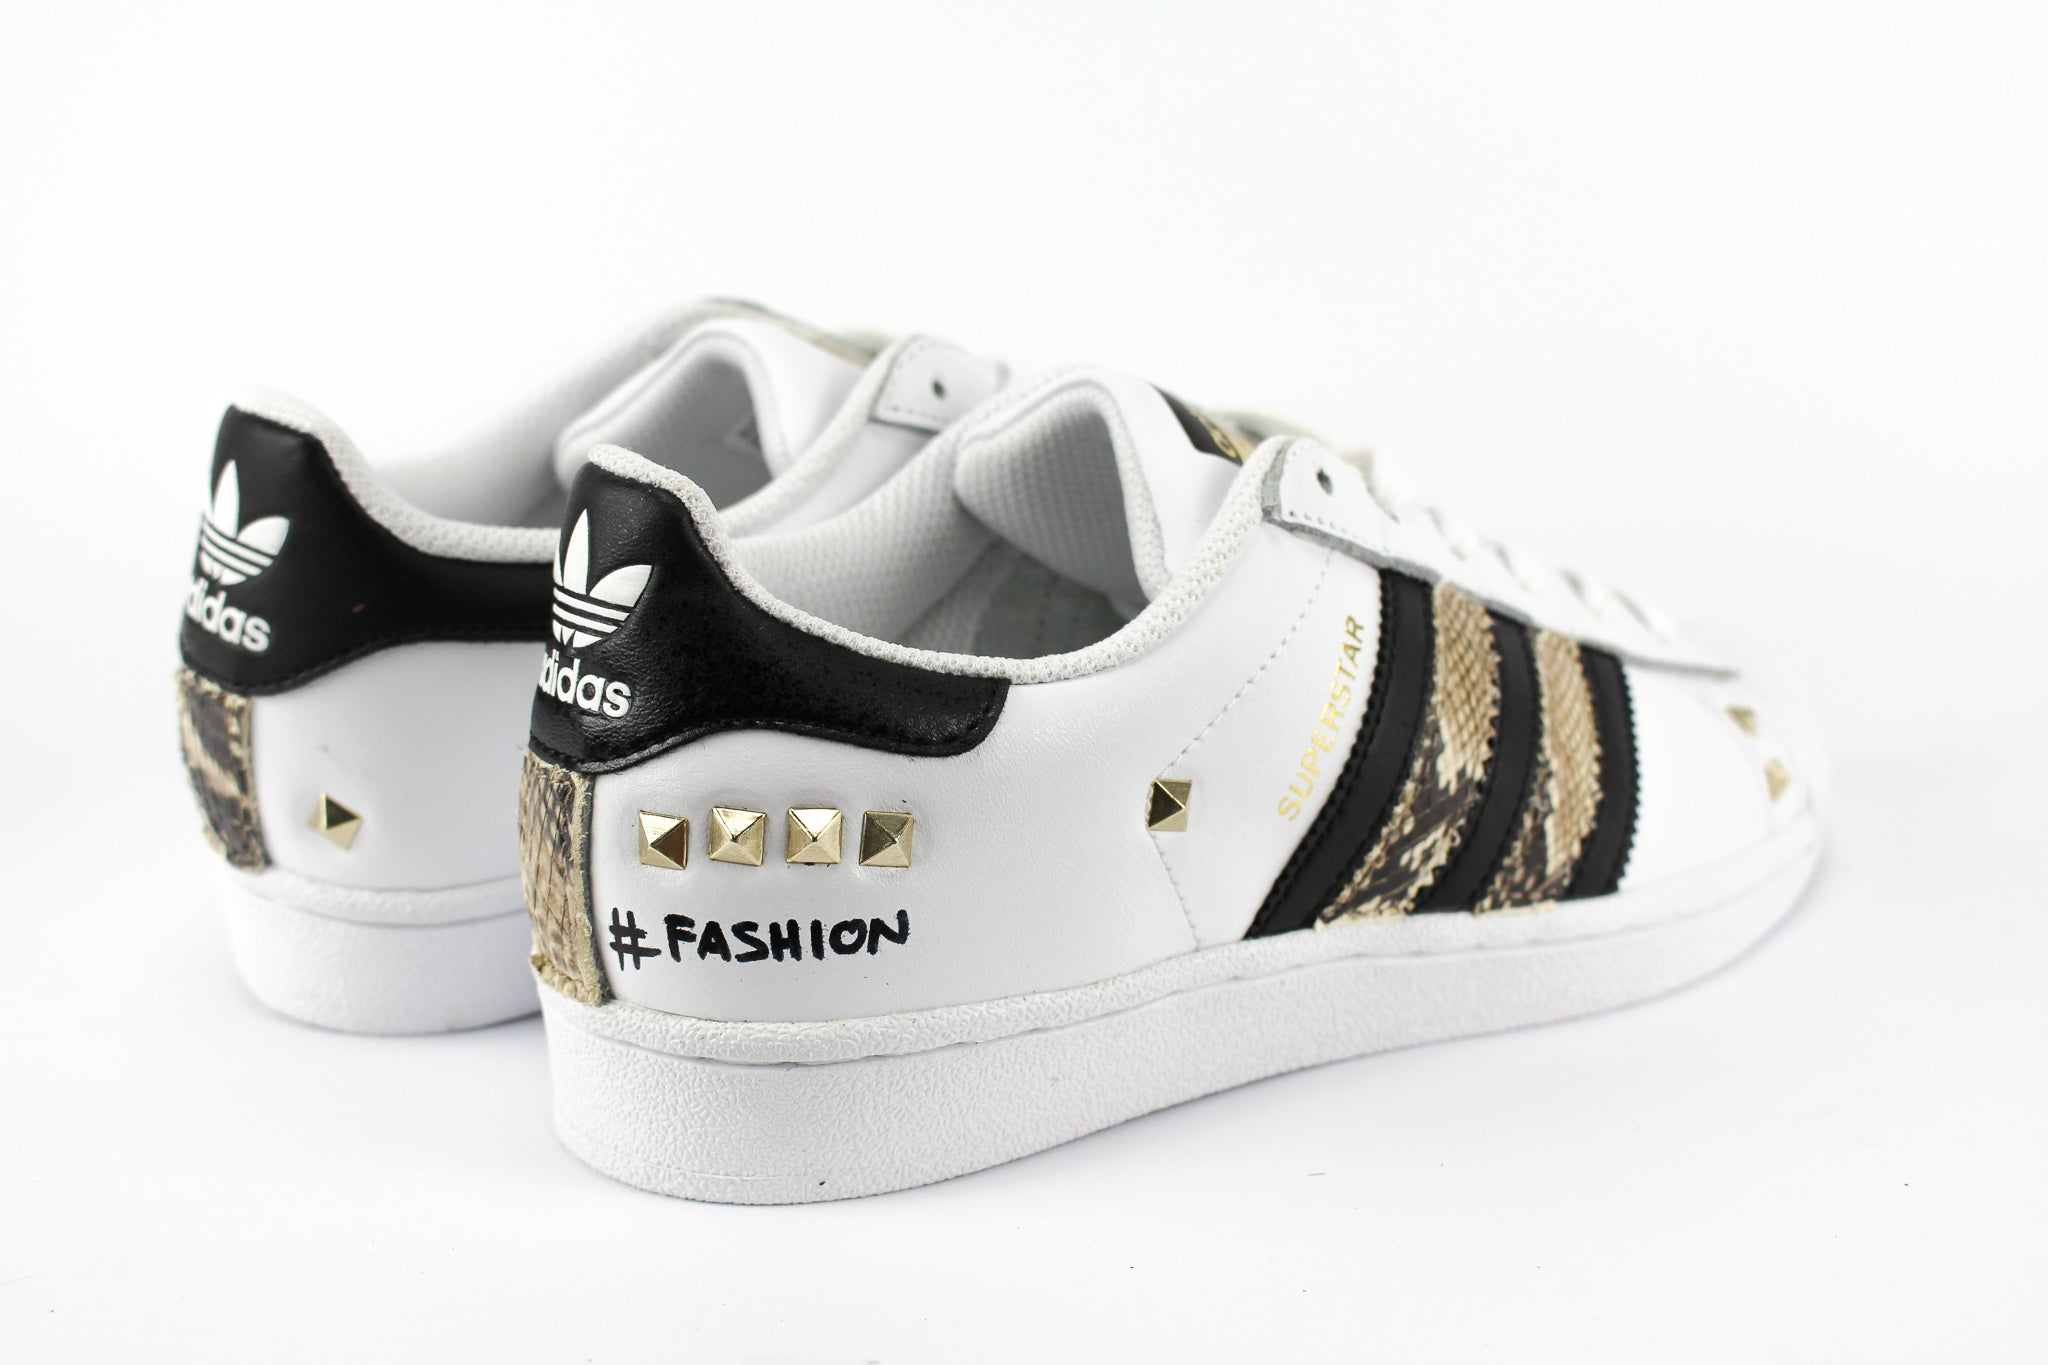 Adidas Superstar Pitonate Borchie & Graffiti